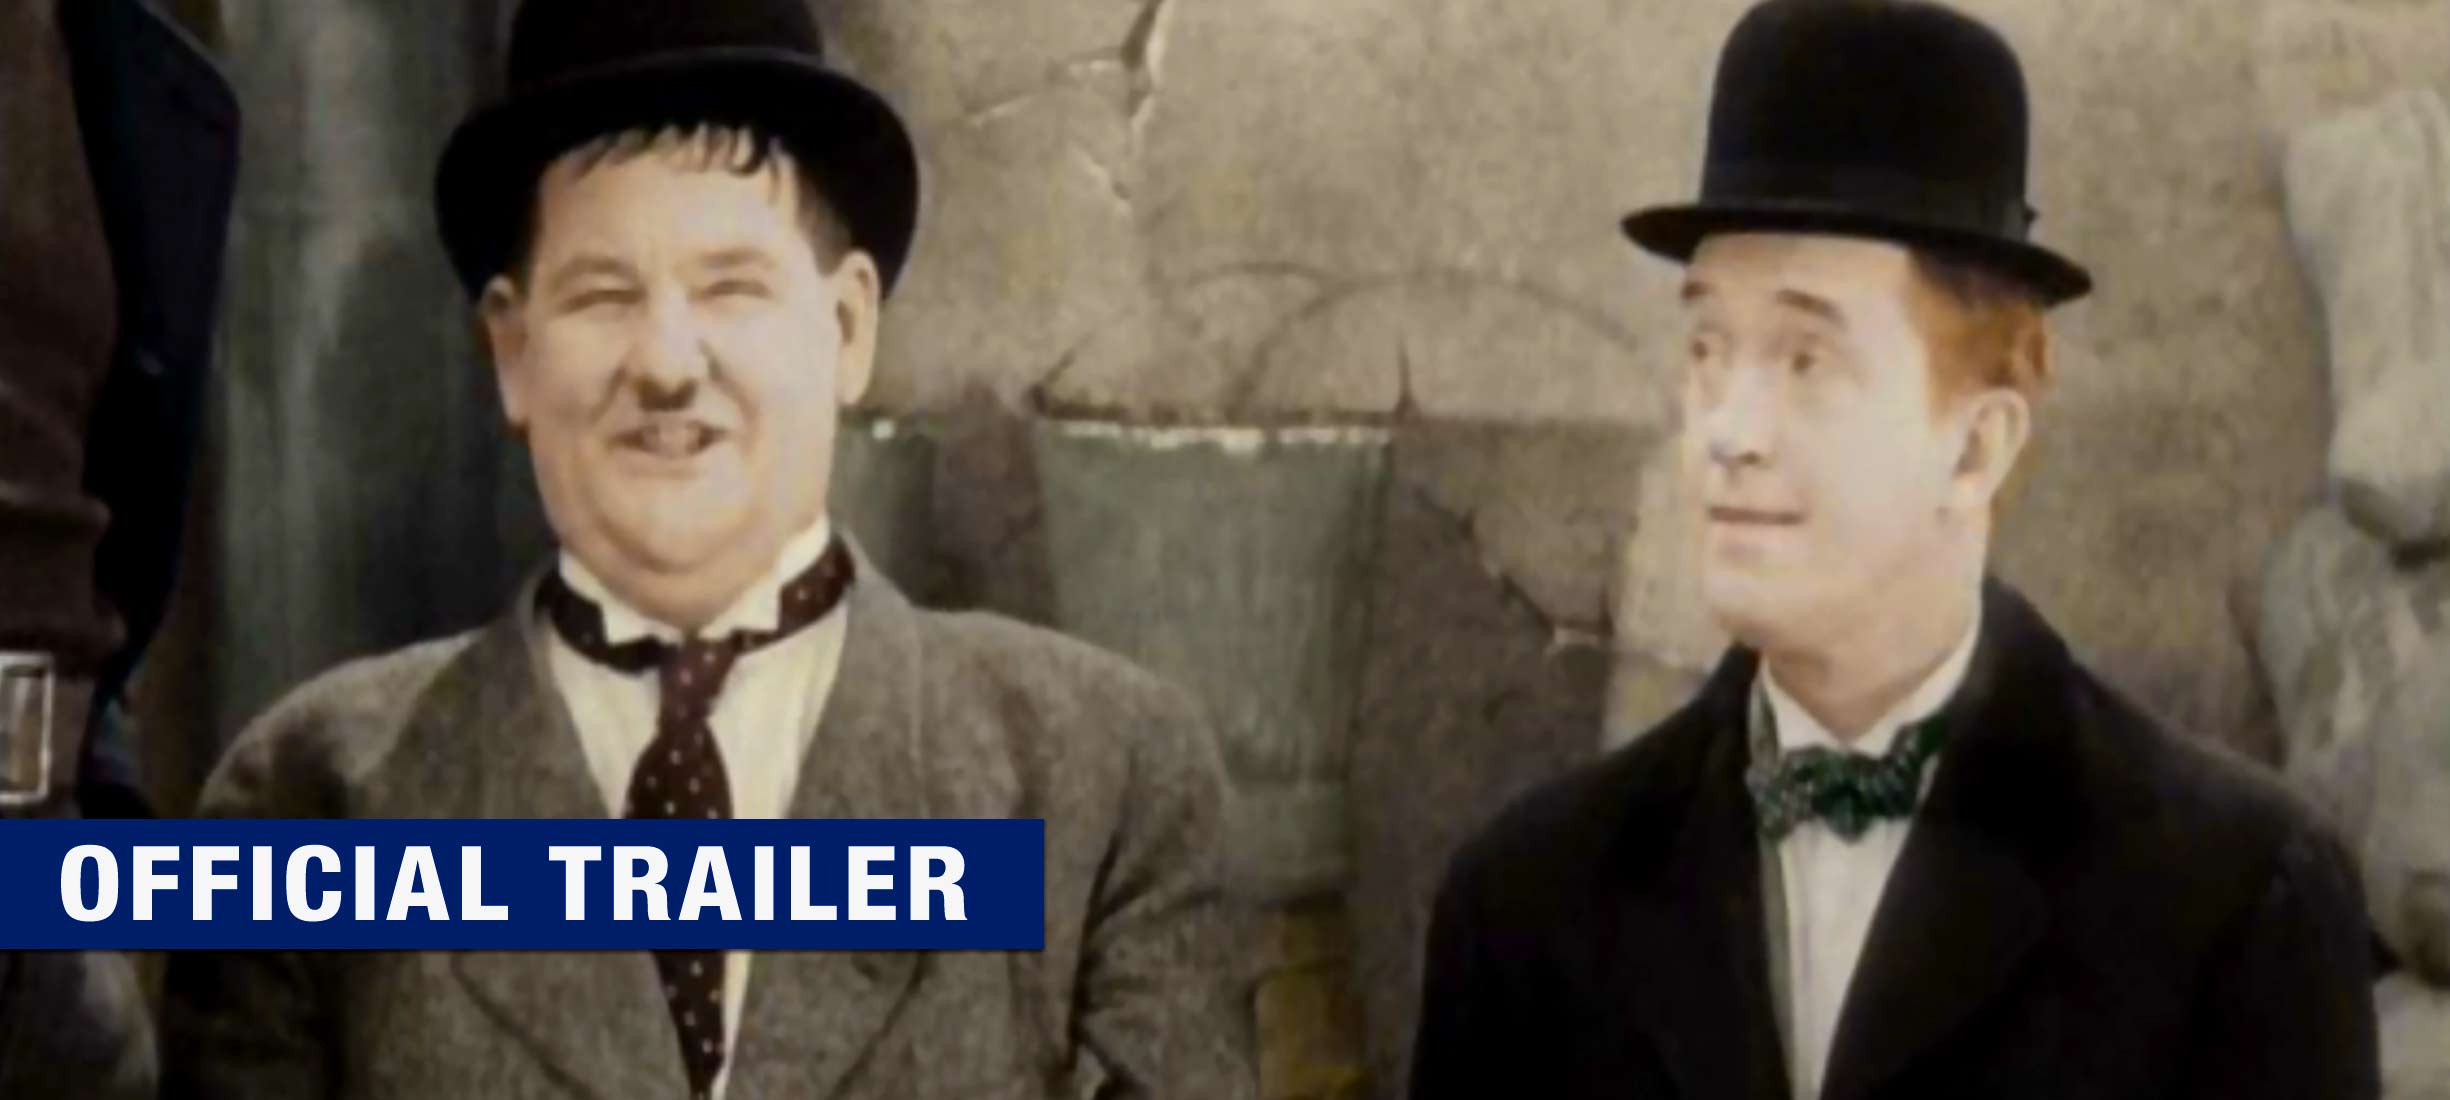 The Best of Laurel and Hardy: Official Trailer